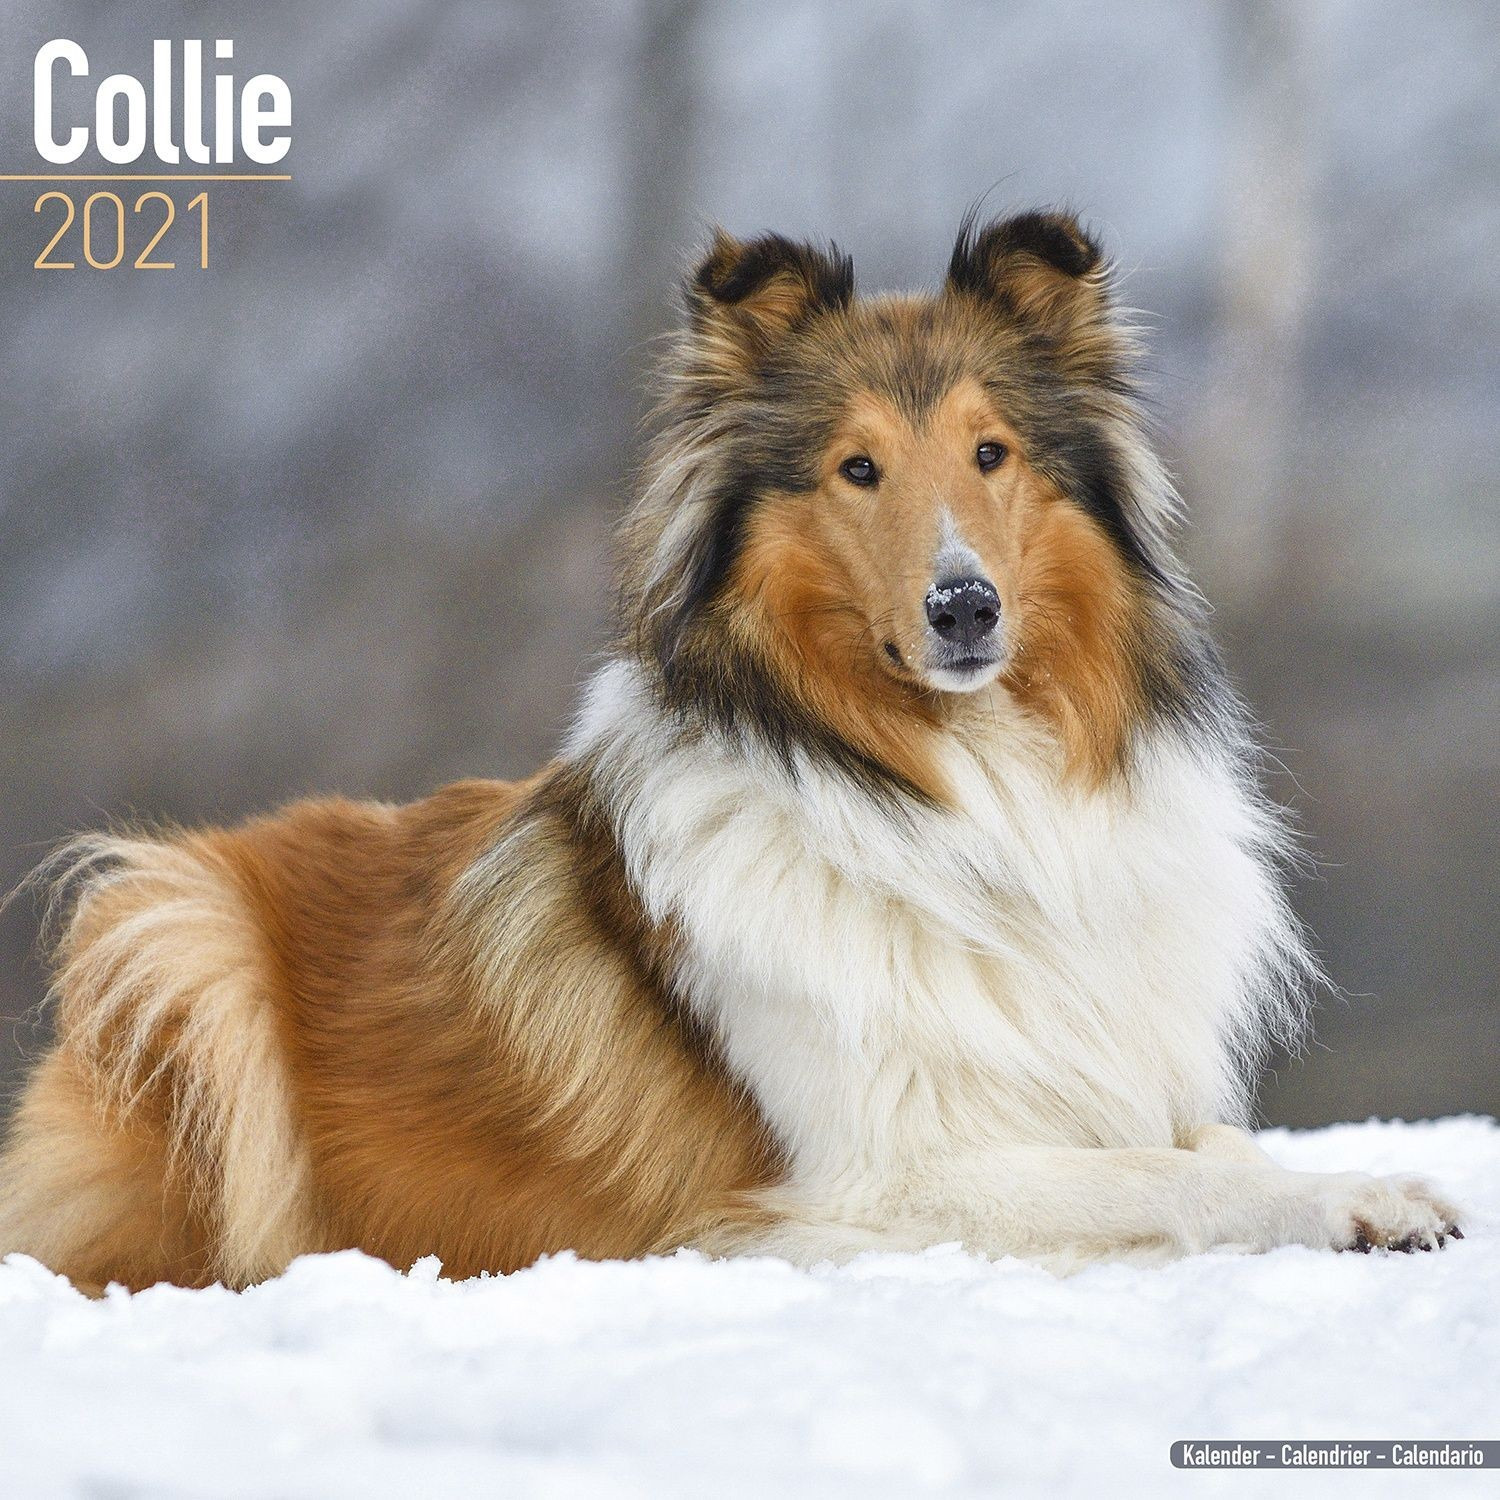 Collie Wall Calendar 2021 by Avonside